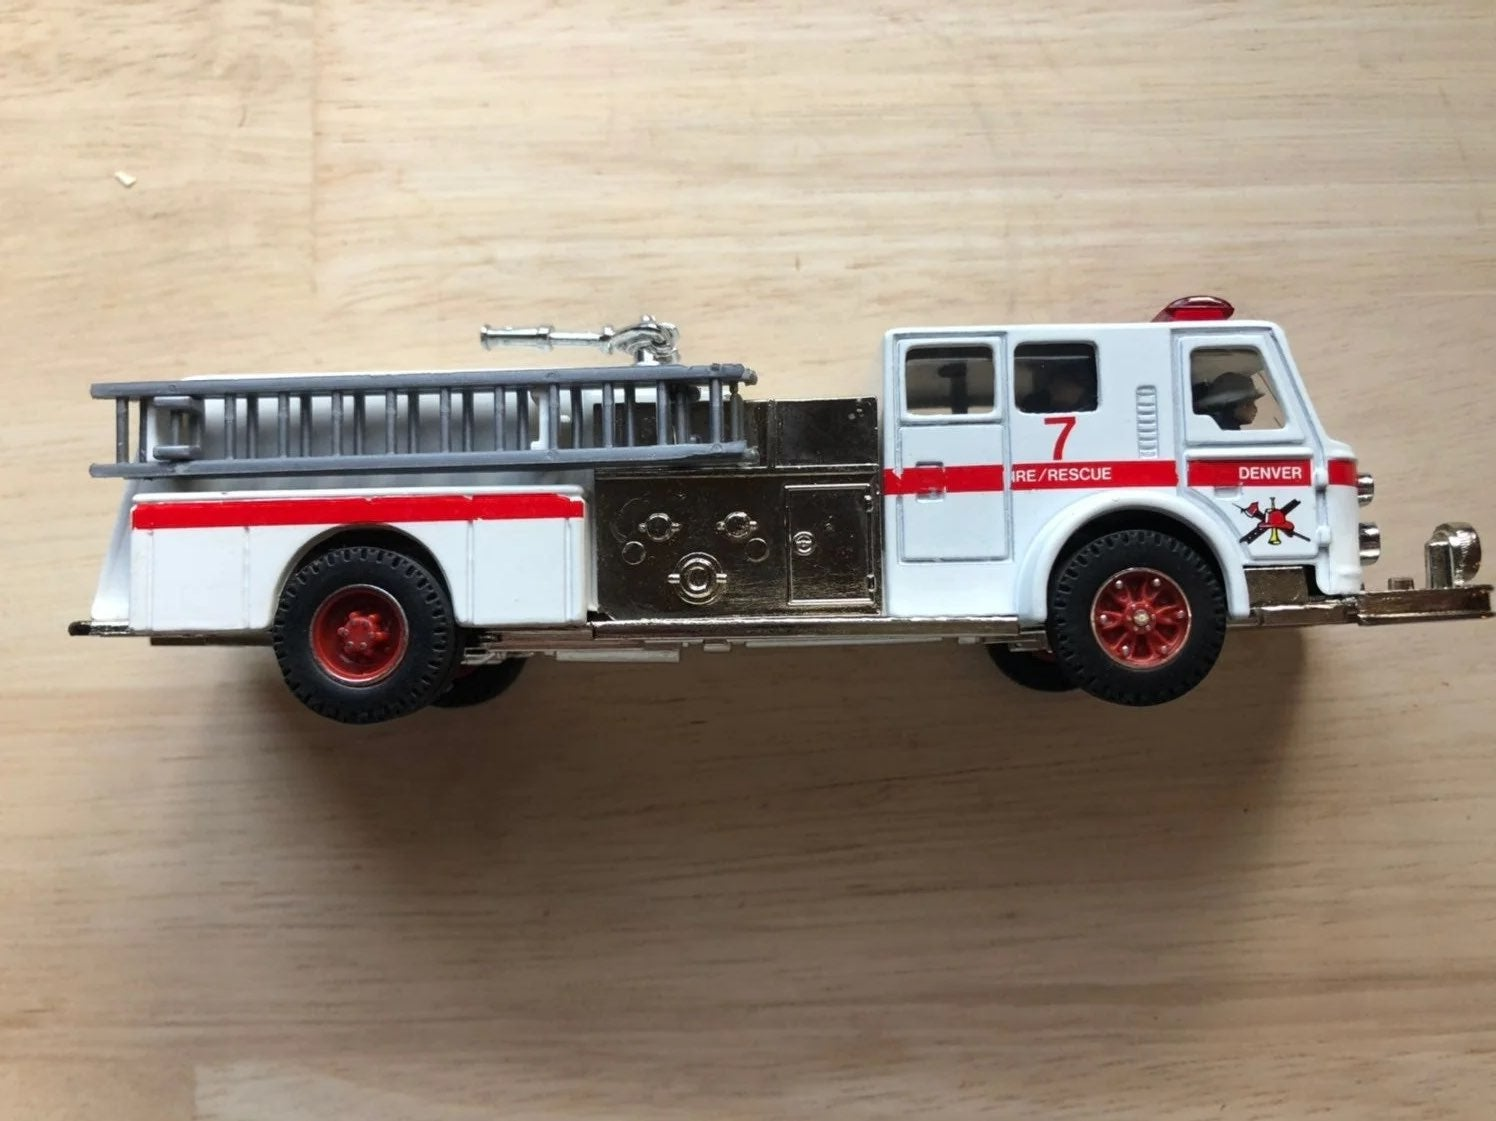 Diecast model replica fire truck Denver